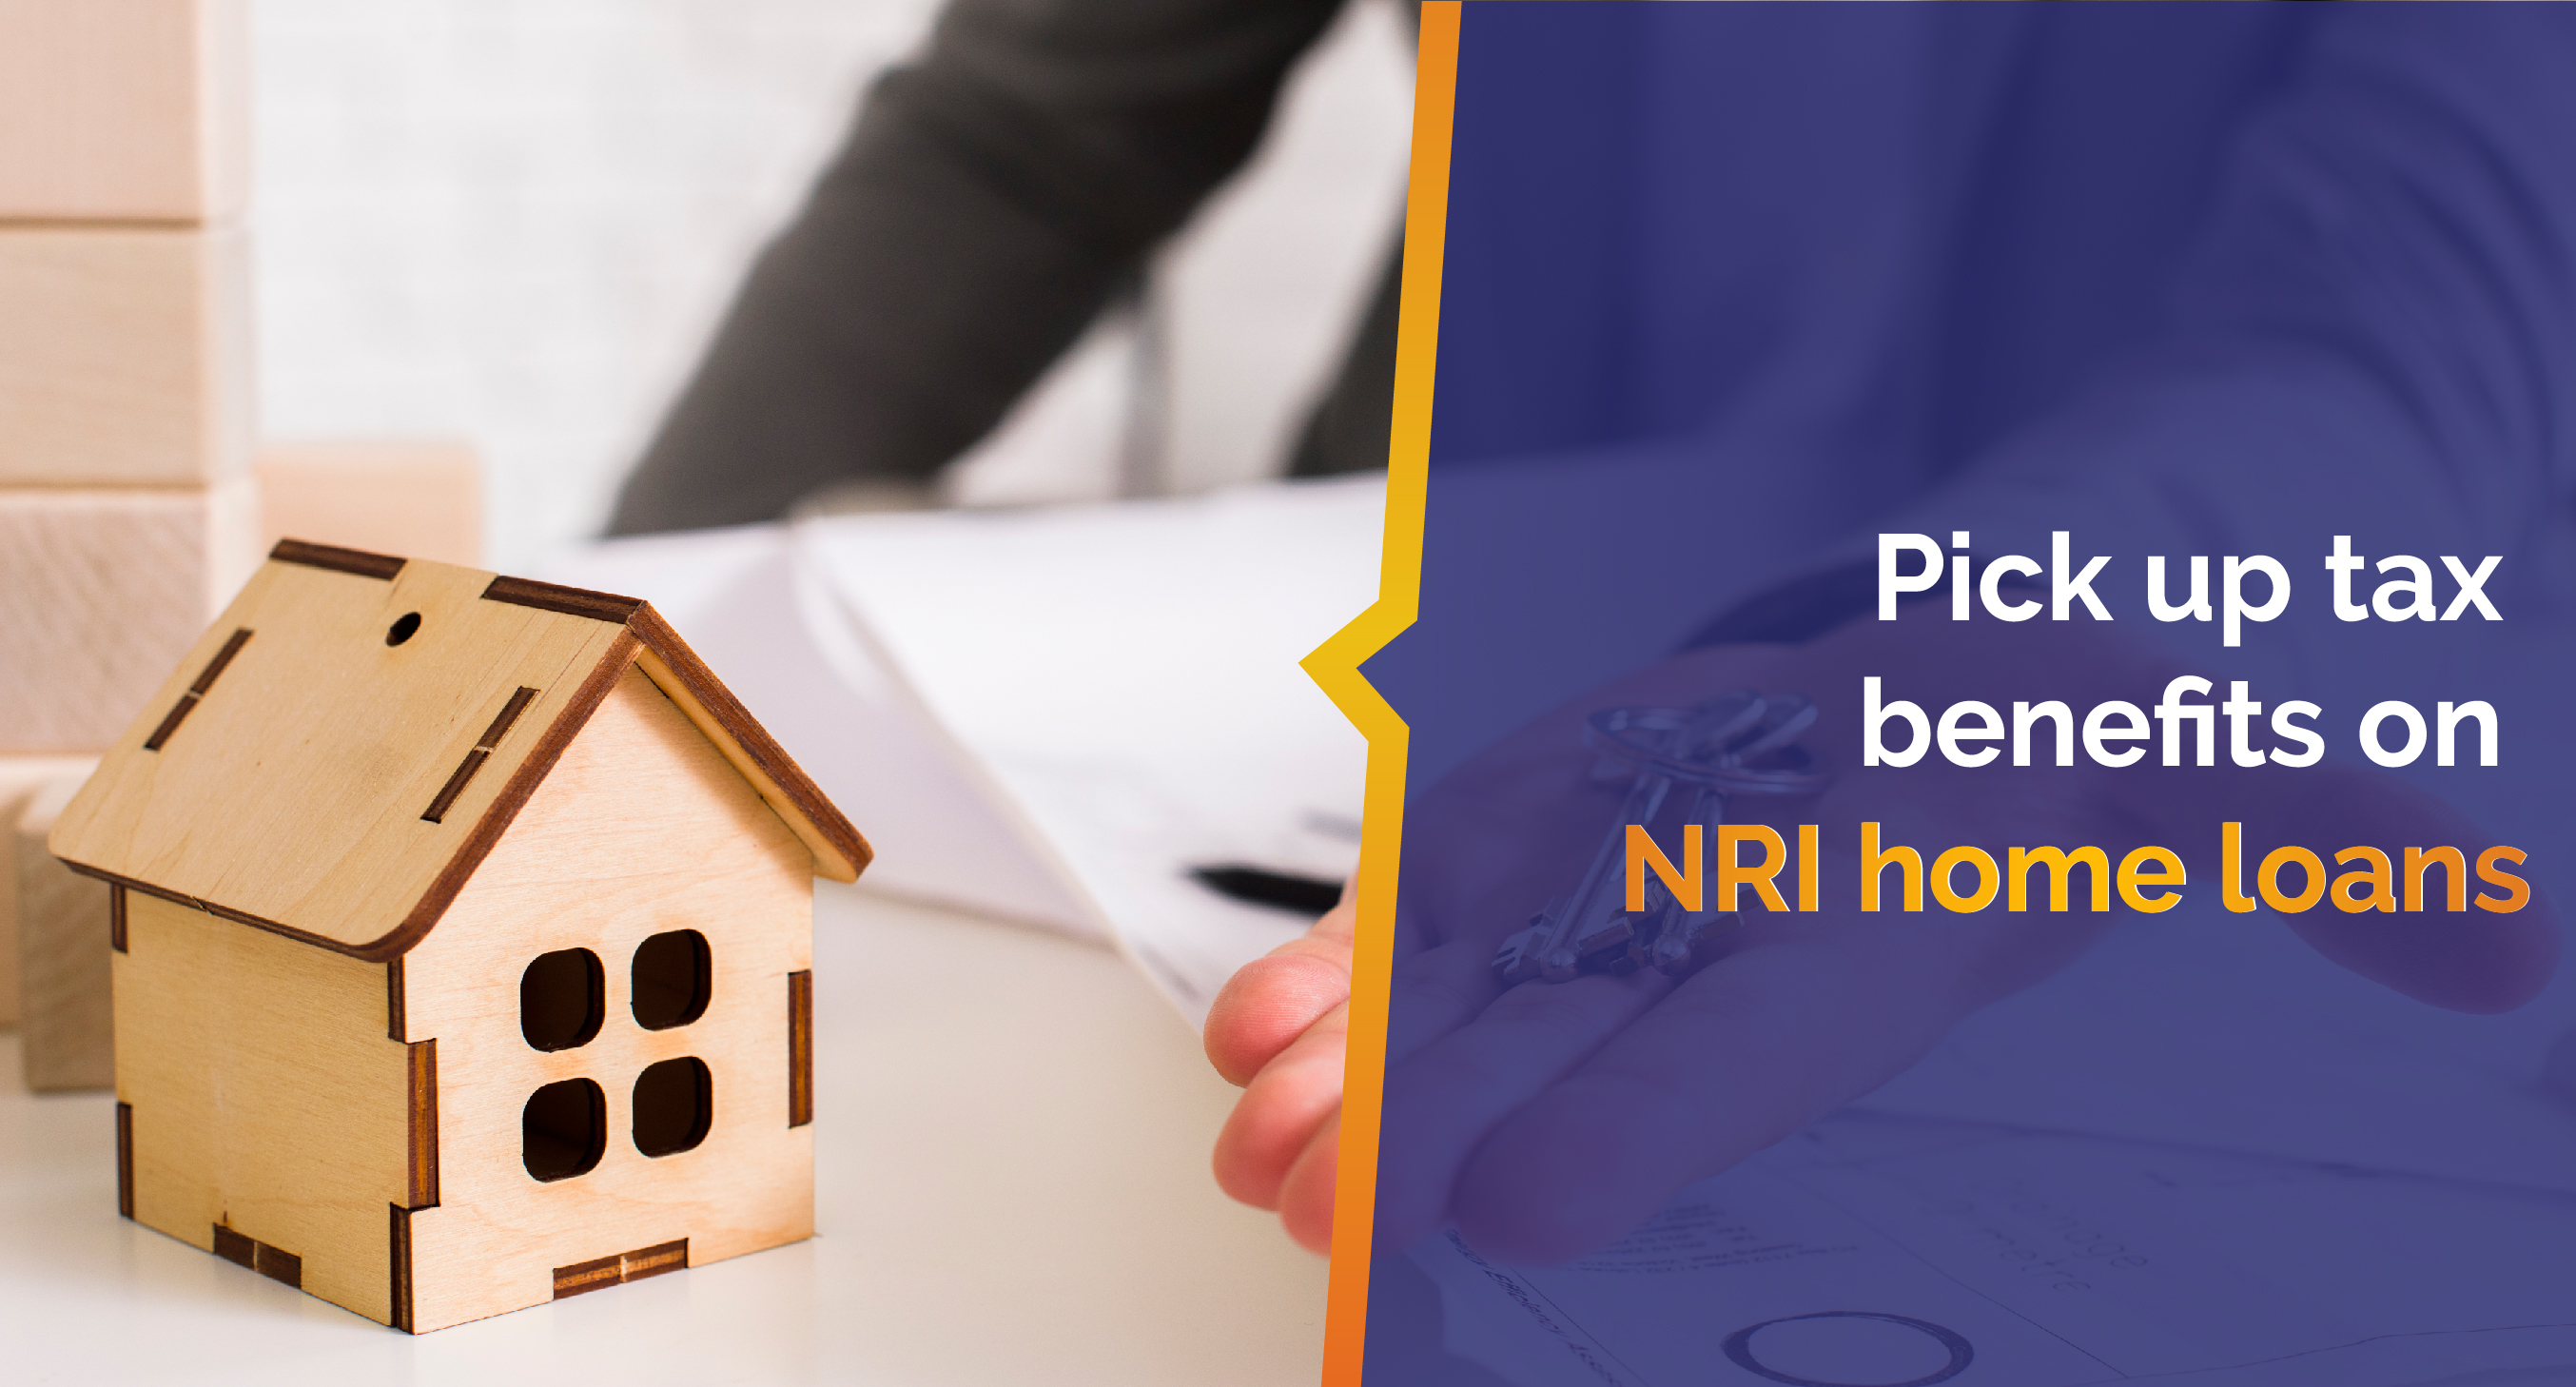 Pick up tax benefits for NRIs home loans